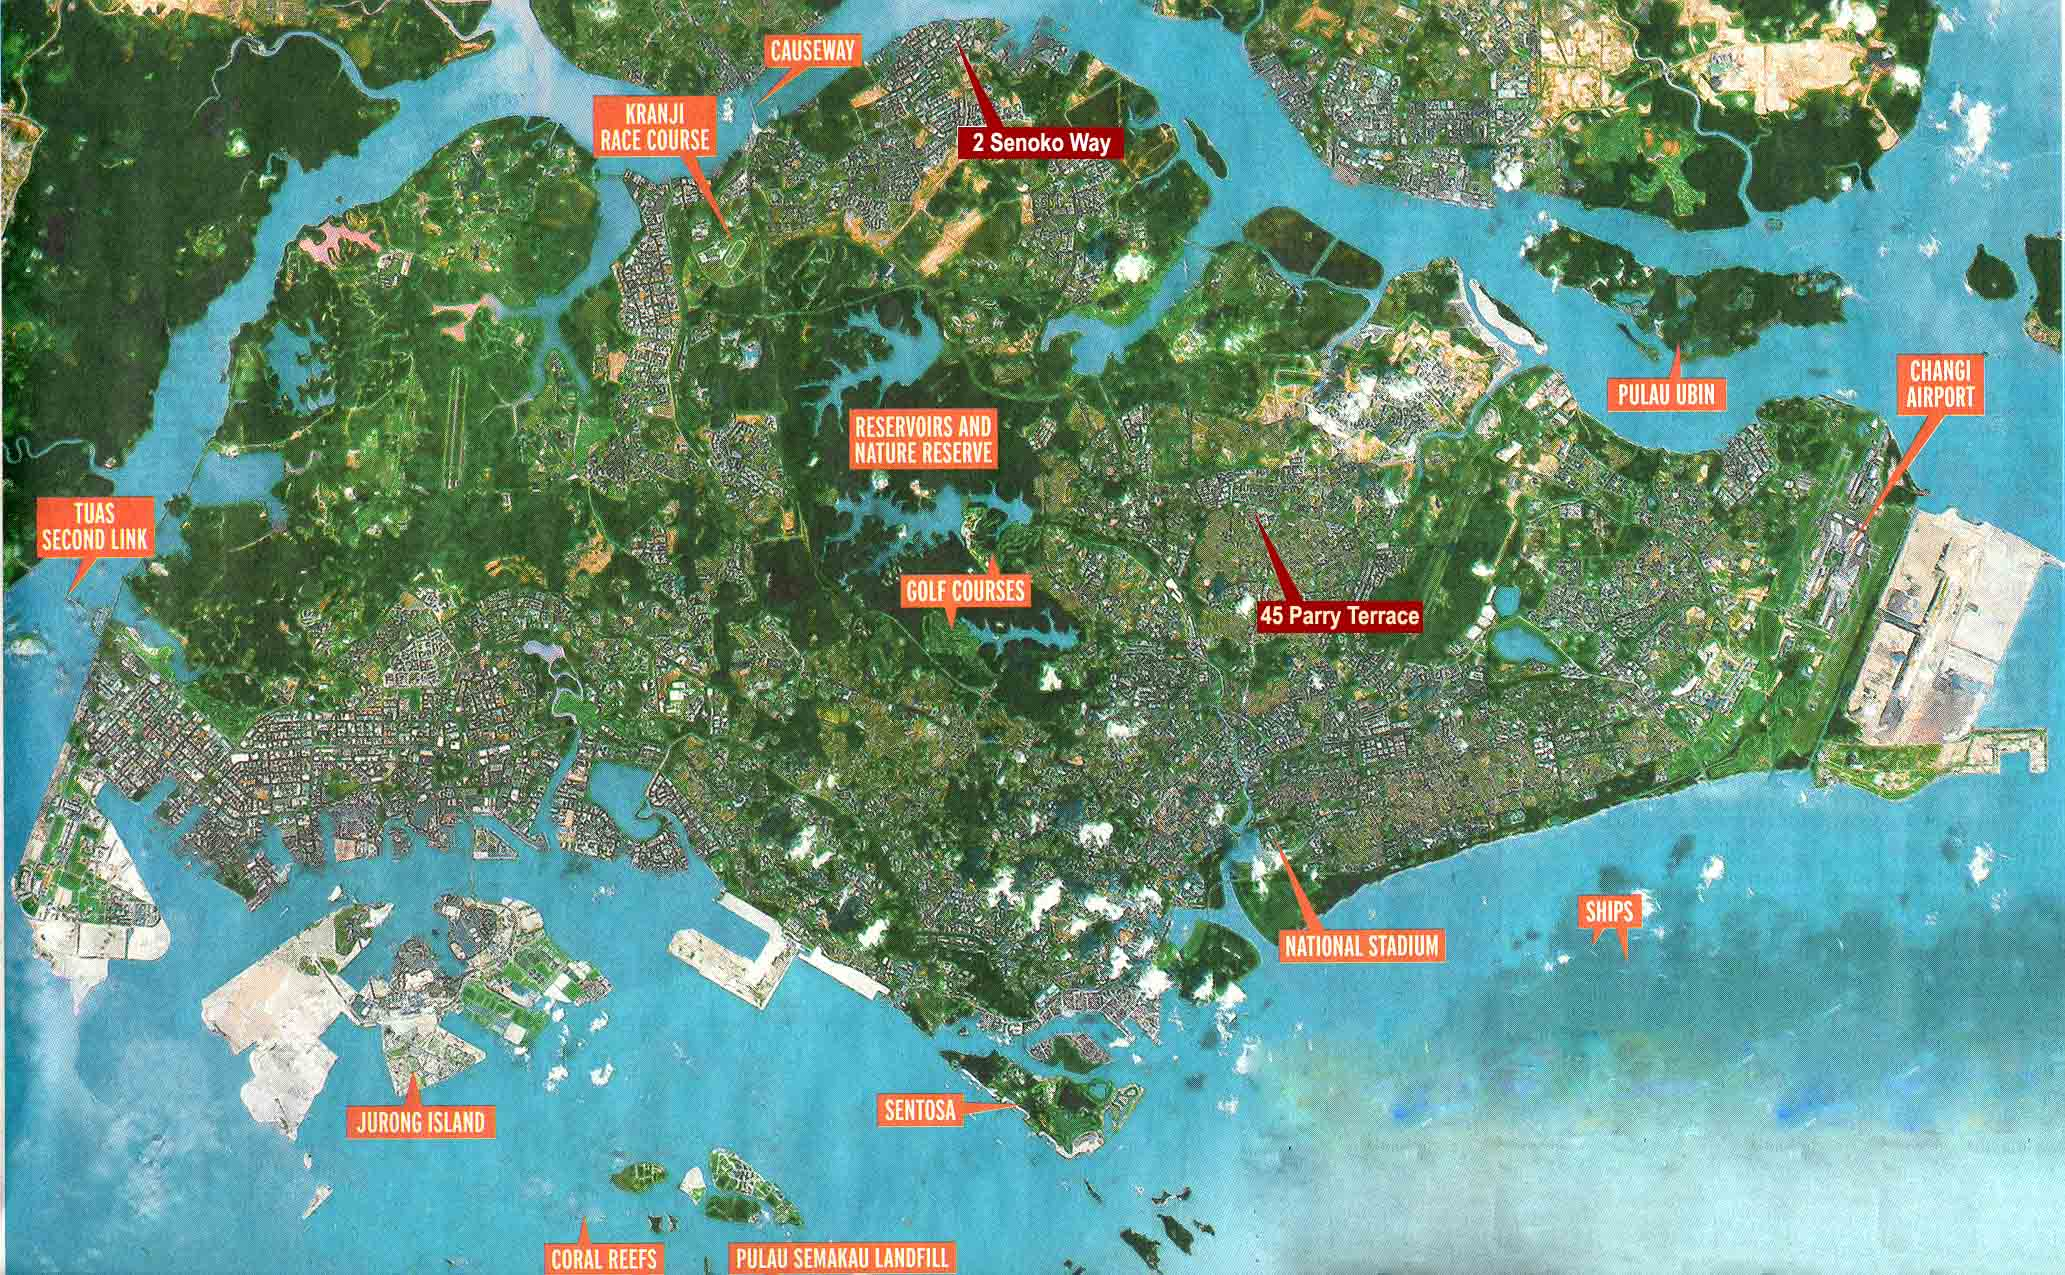 Large singapore city maps for free download and print high detailed map of singapore city 2 gumiabroncs Image collections